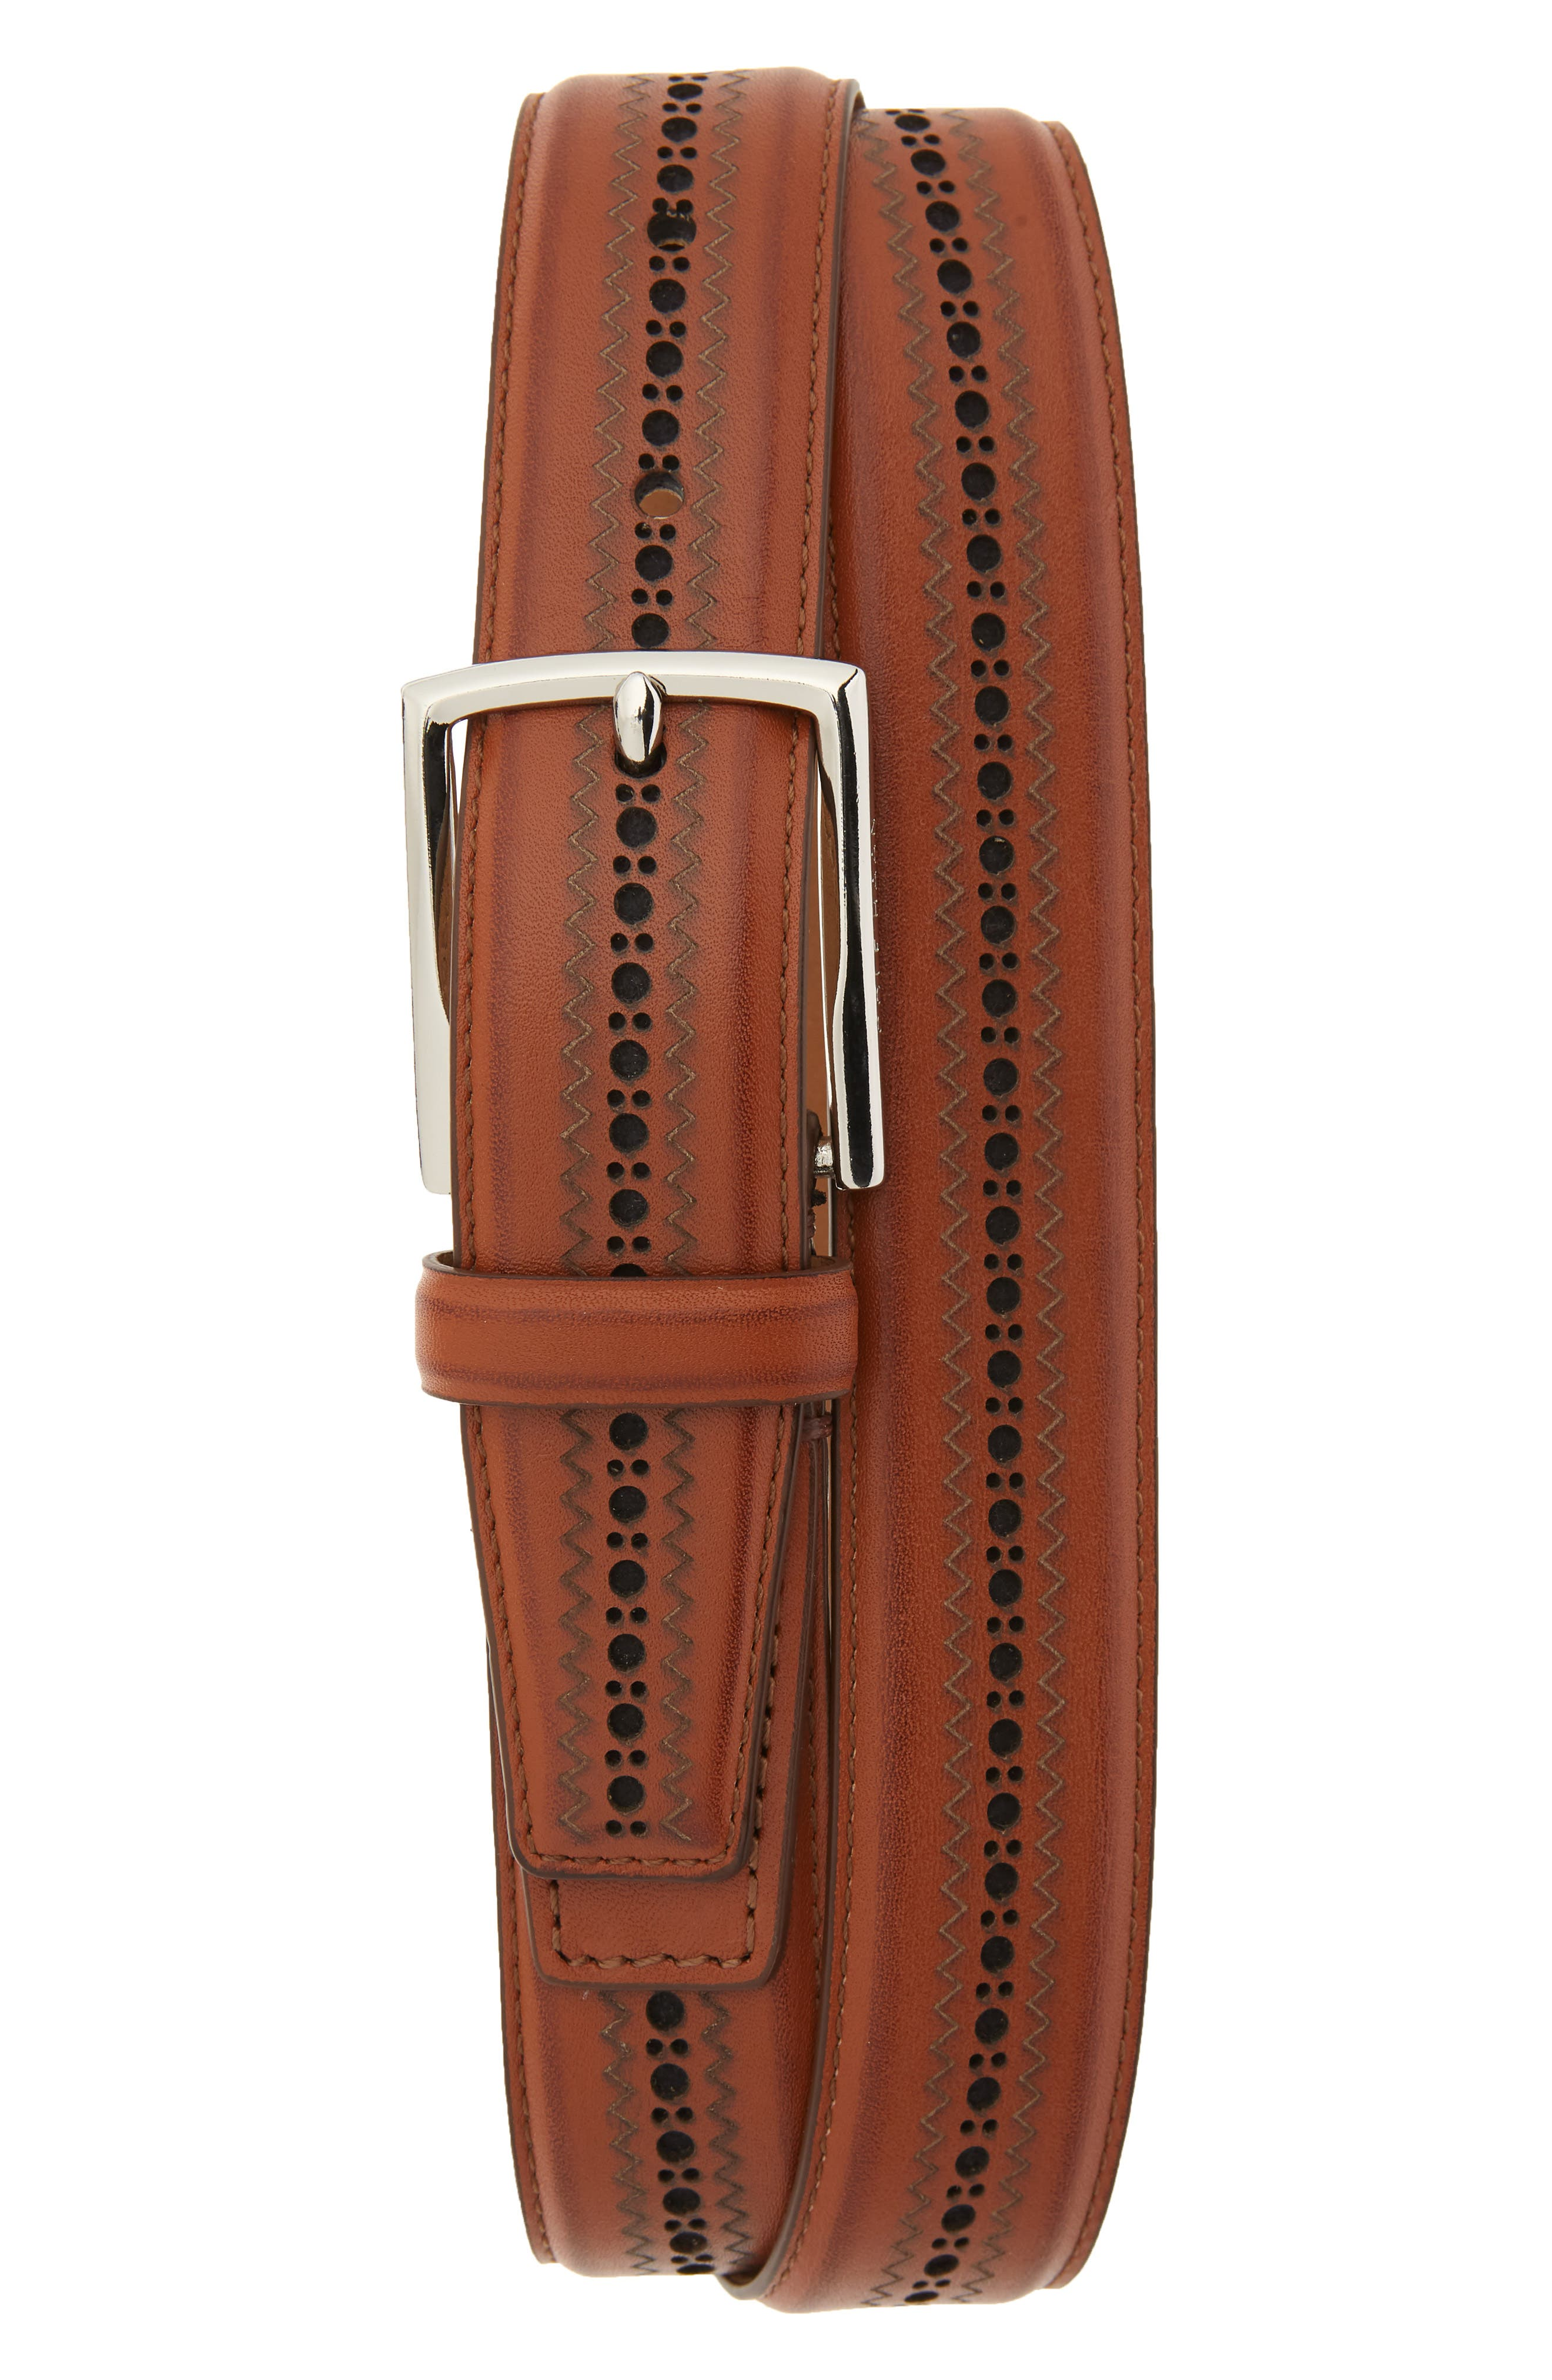 Cole Haan Feather Edge Stitched Belt, British Tan/ Polished Nickel